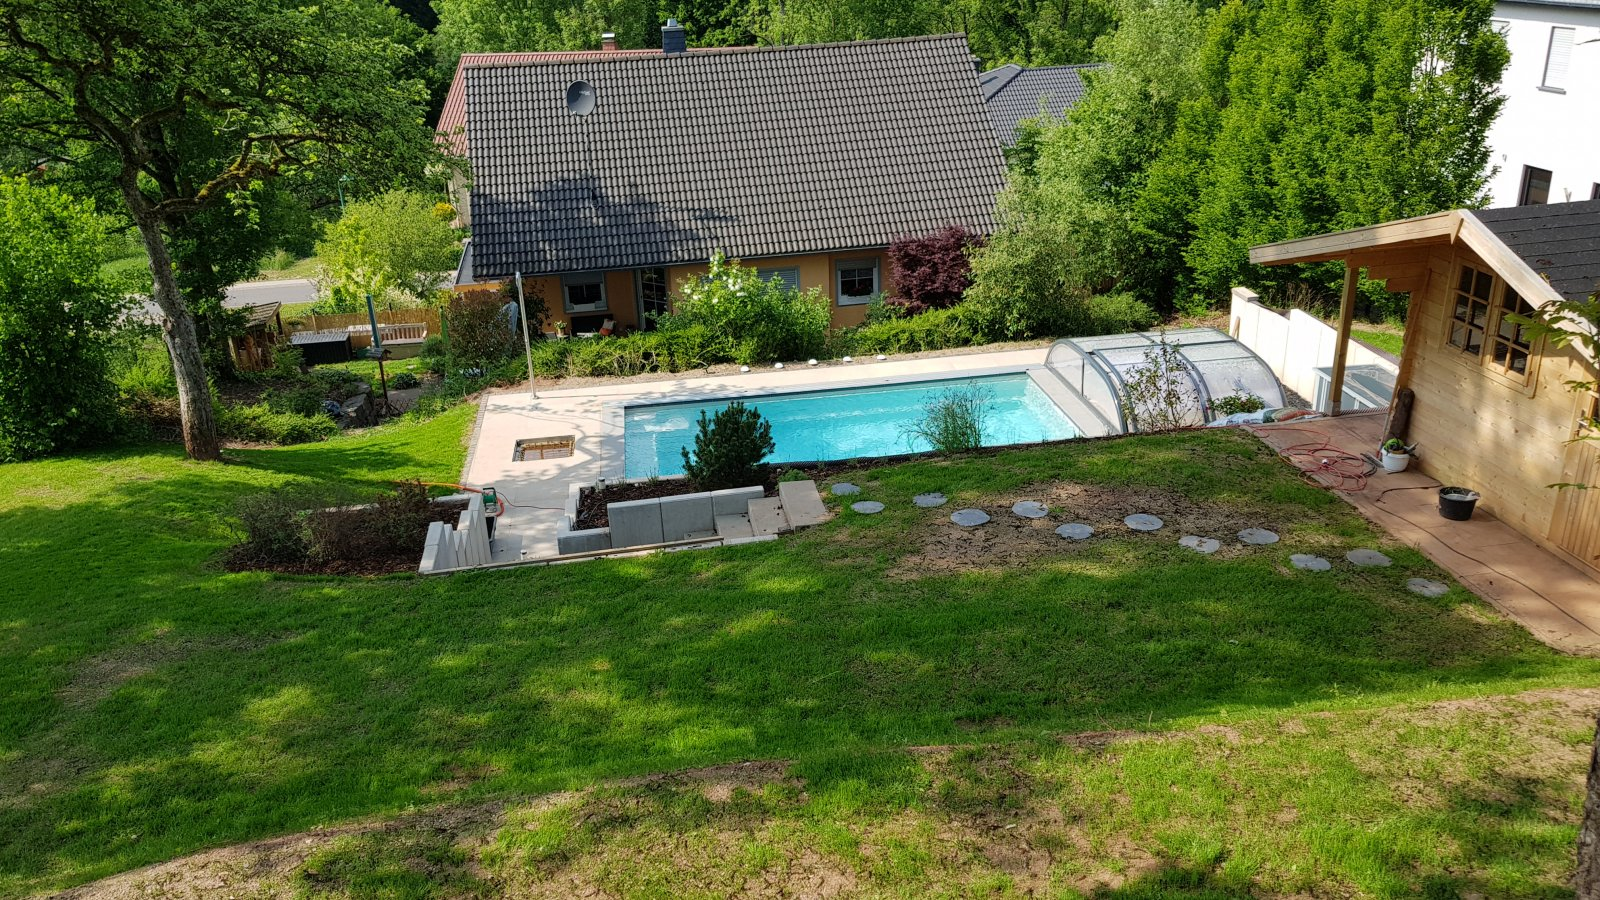 Pool, Baltes Swim, Spa & Home GmbH, Trier - Luxembourg